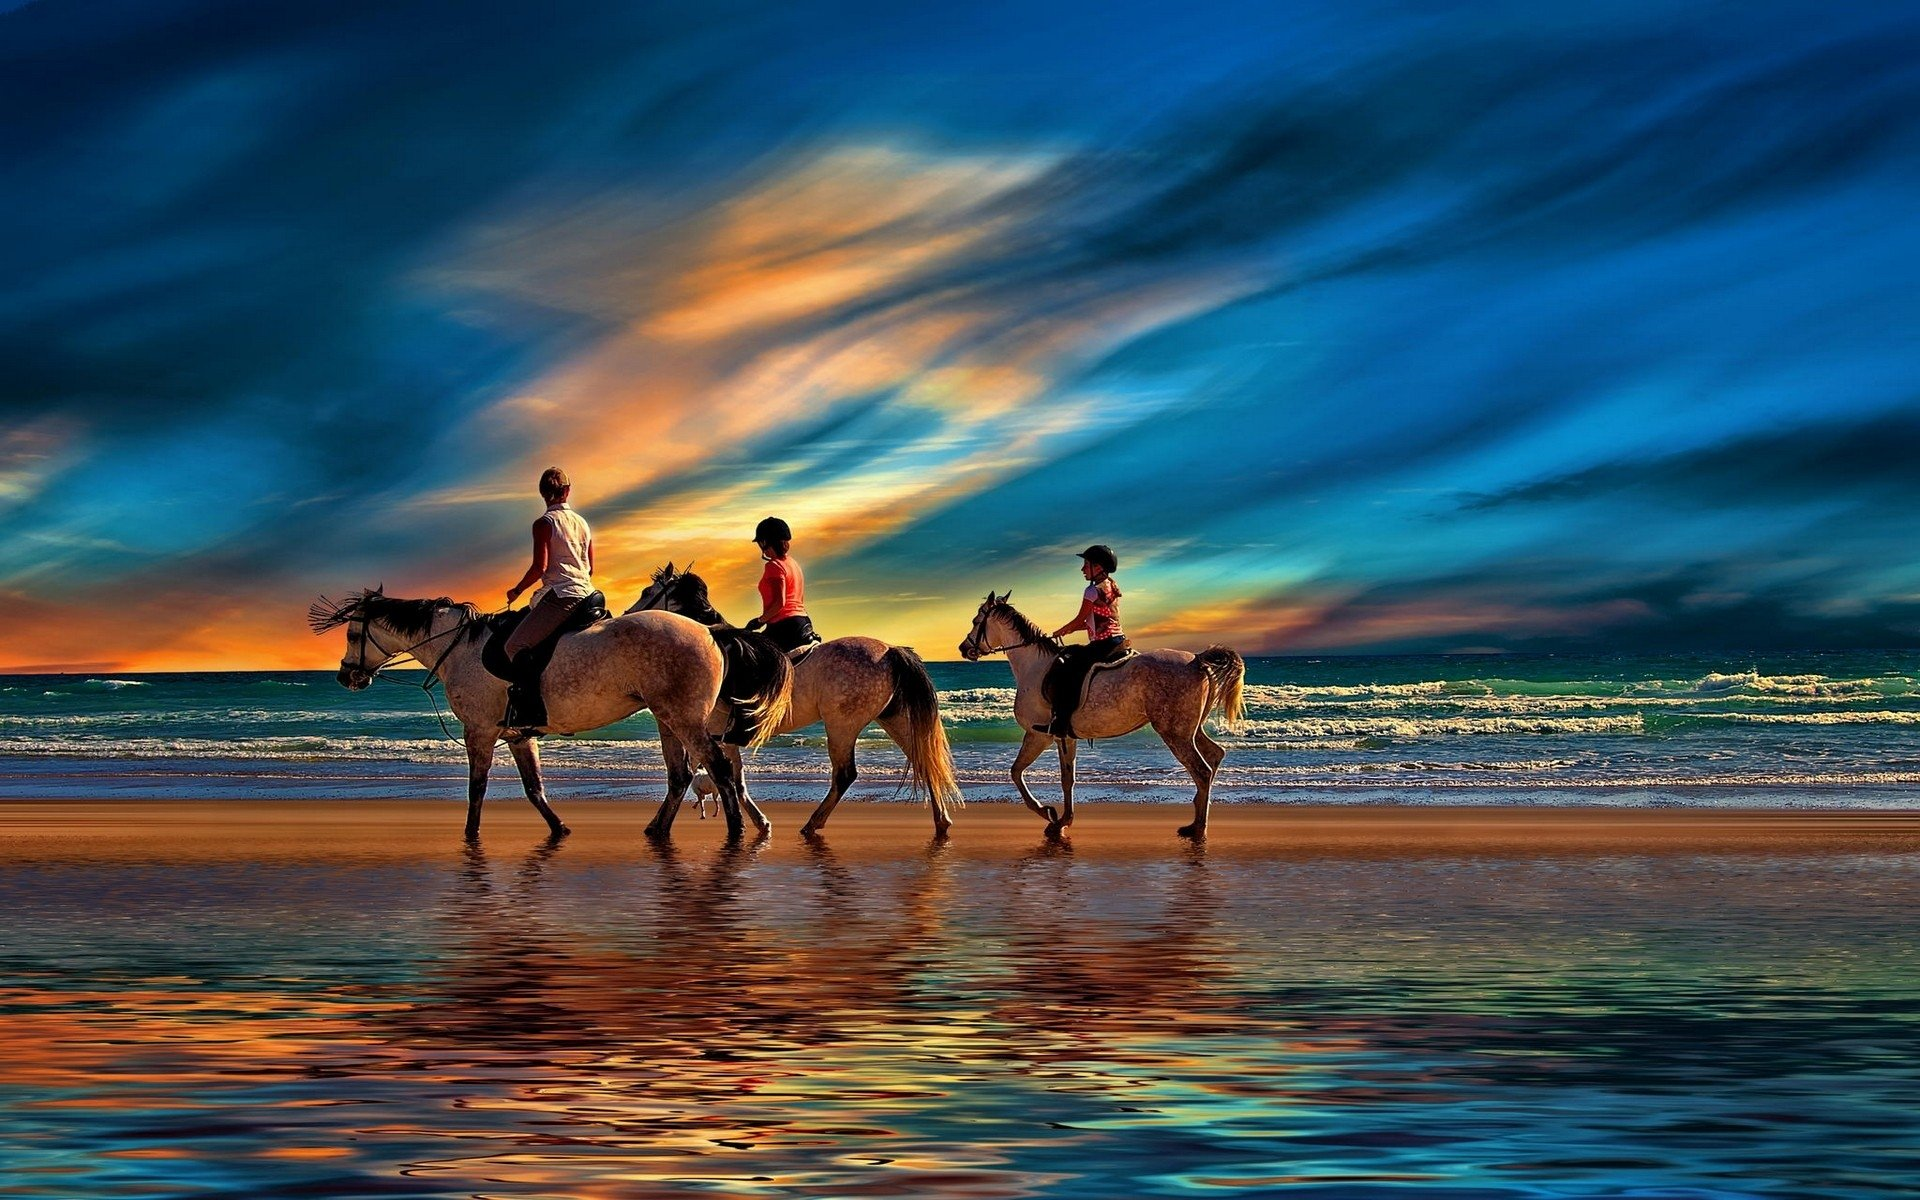 Riding on the plage